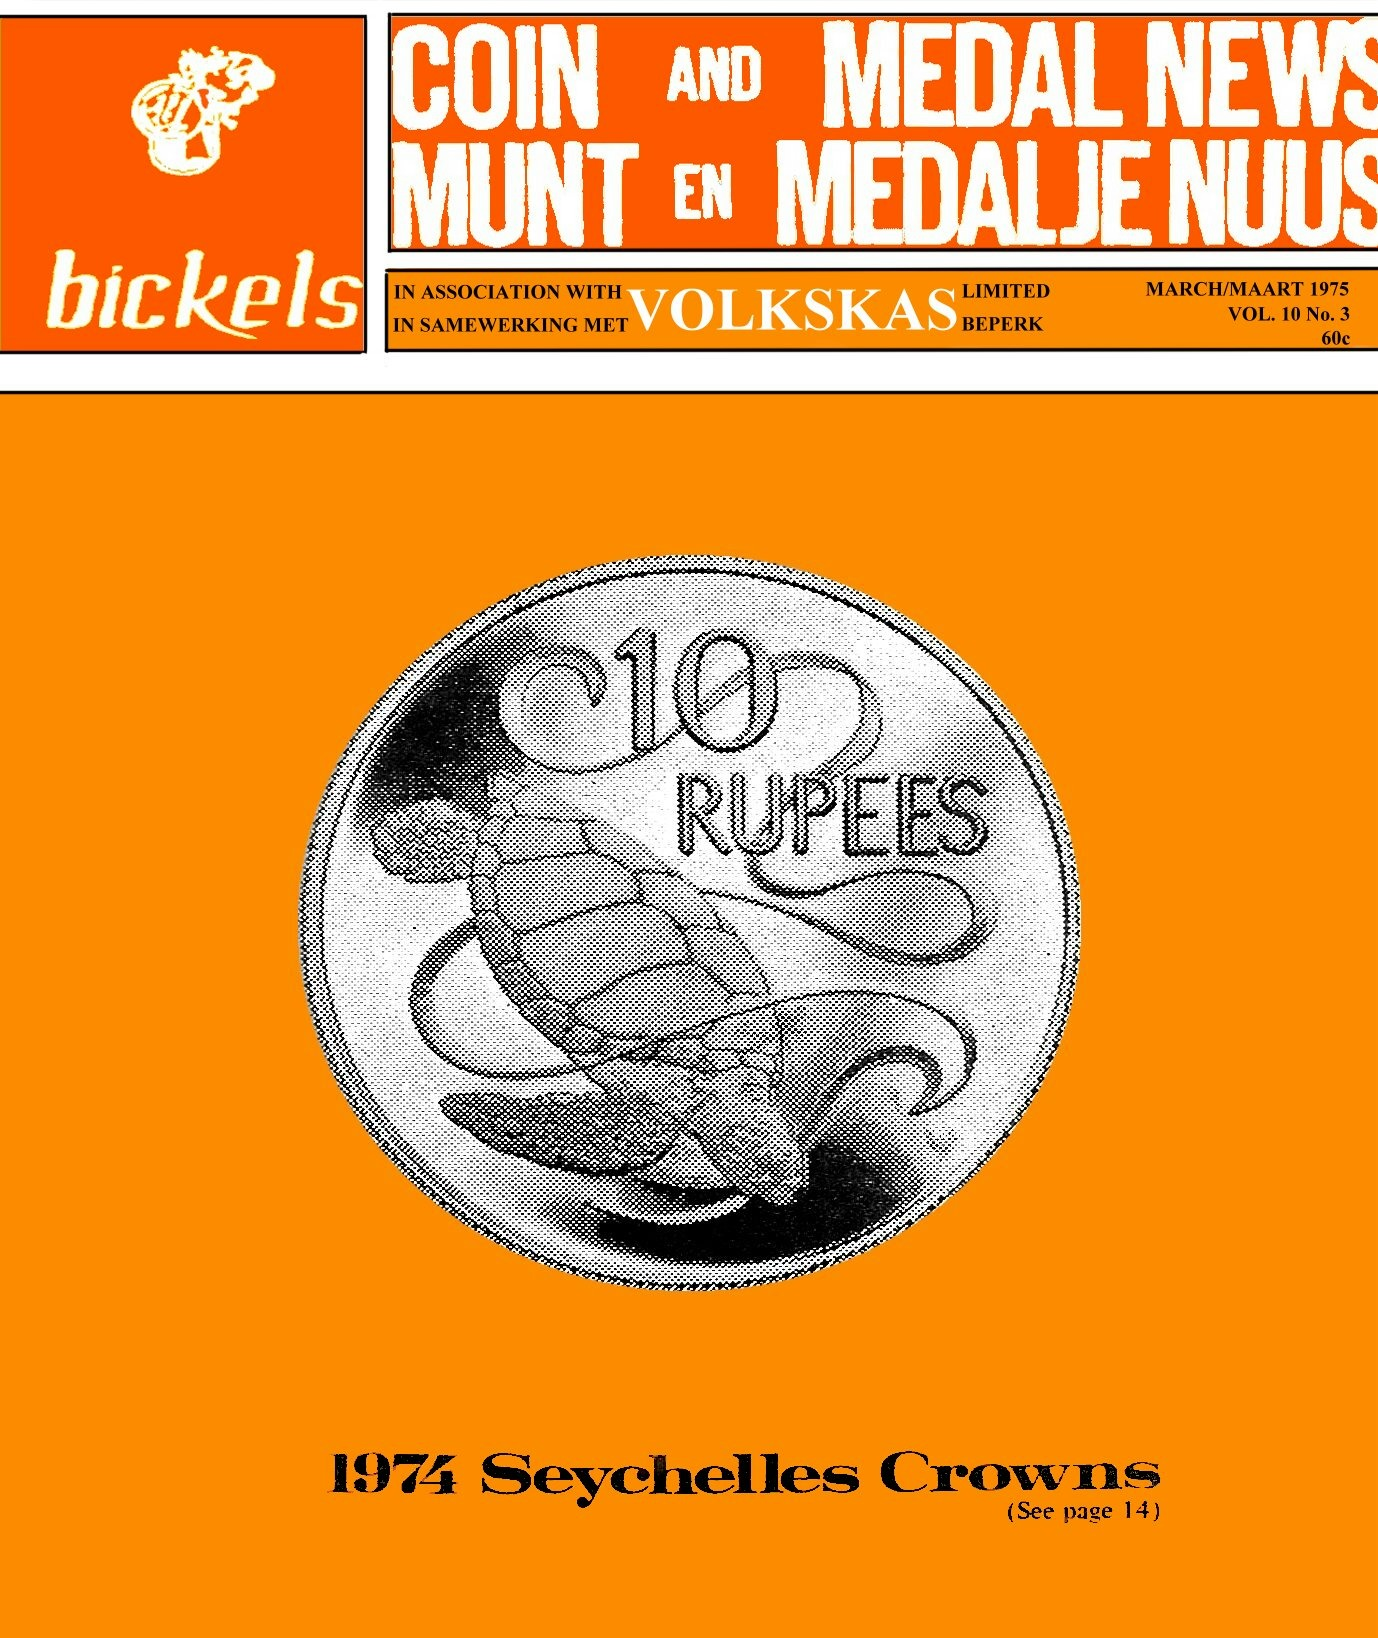 Bickels Coin & Medal News March 1975 Vol 10 No 3